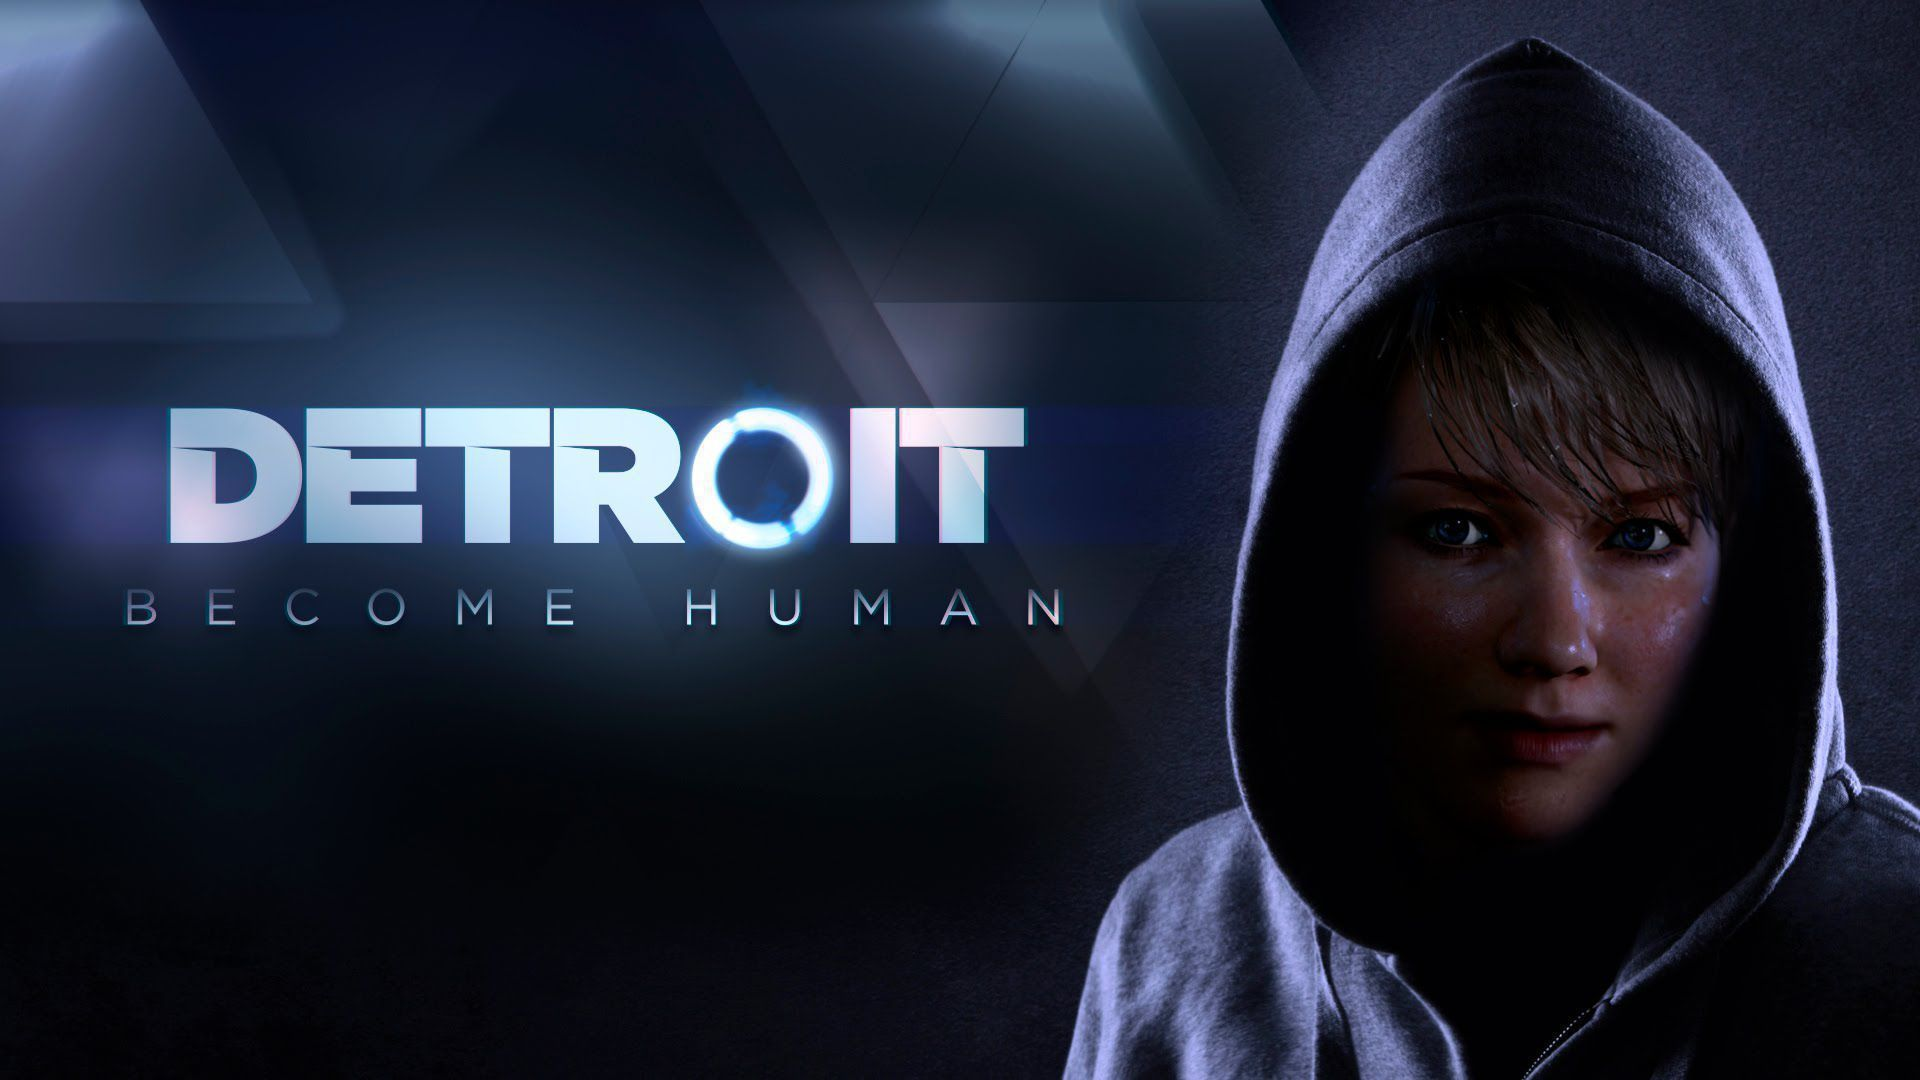 Wallpaper Detroit Become Human Posted By Michelle Peltier